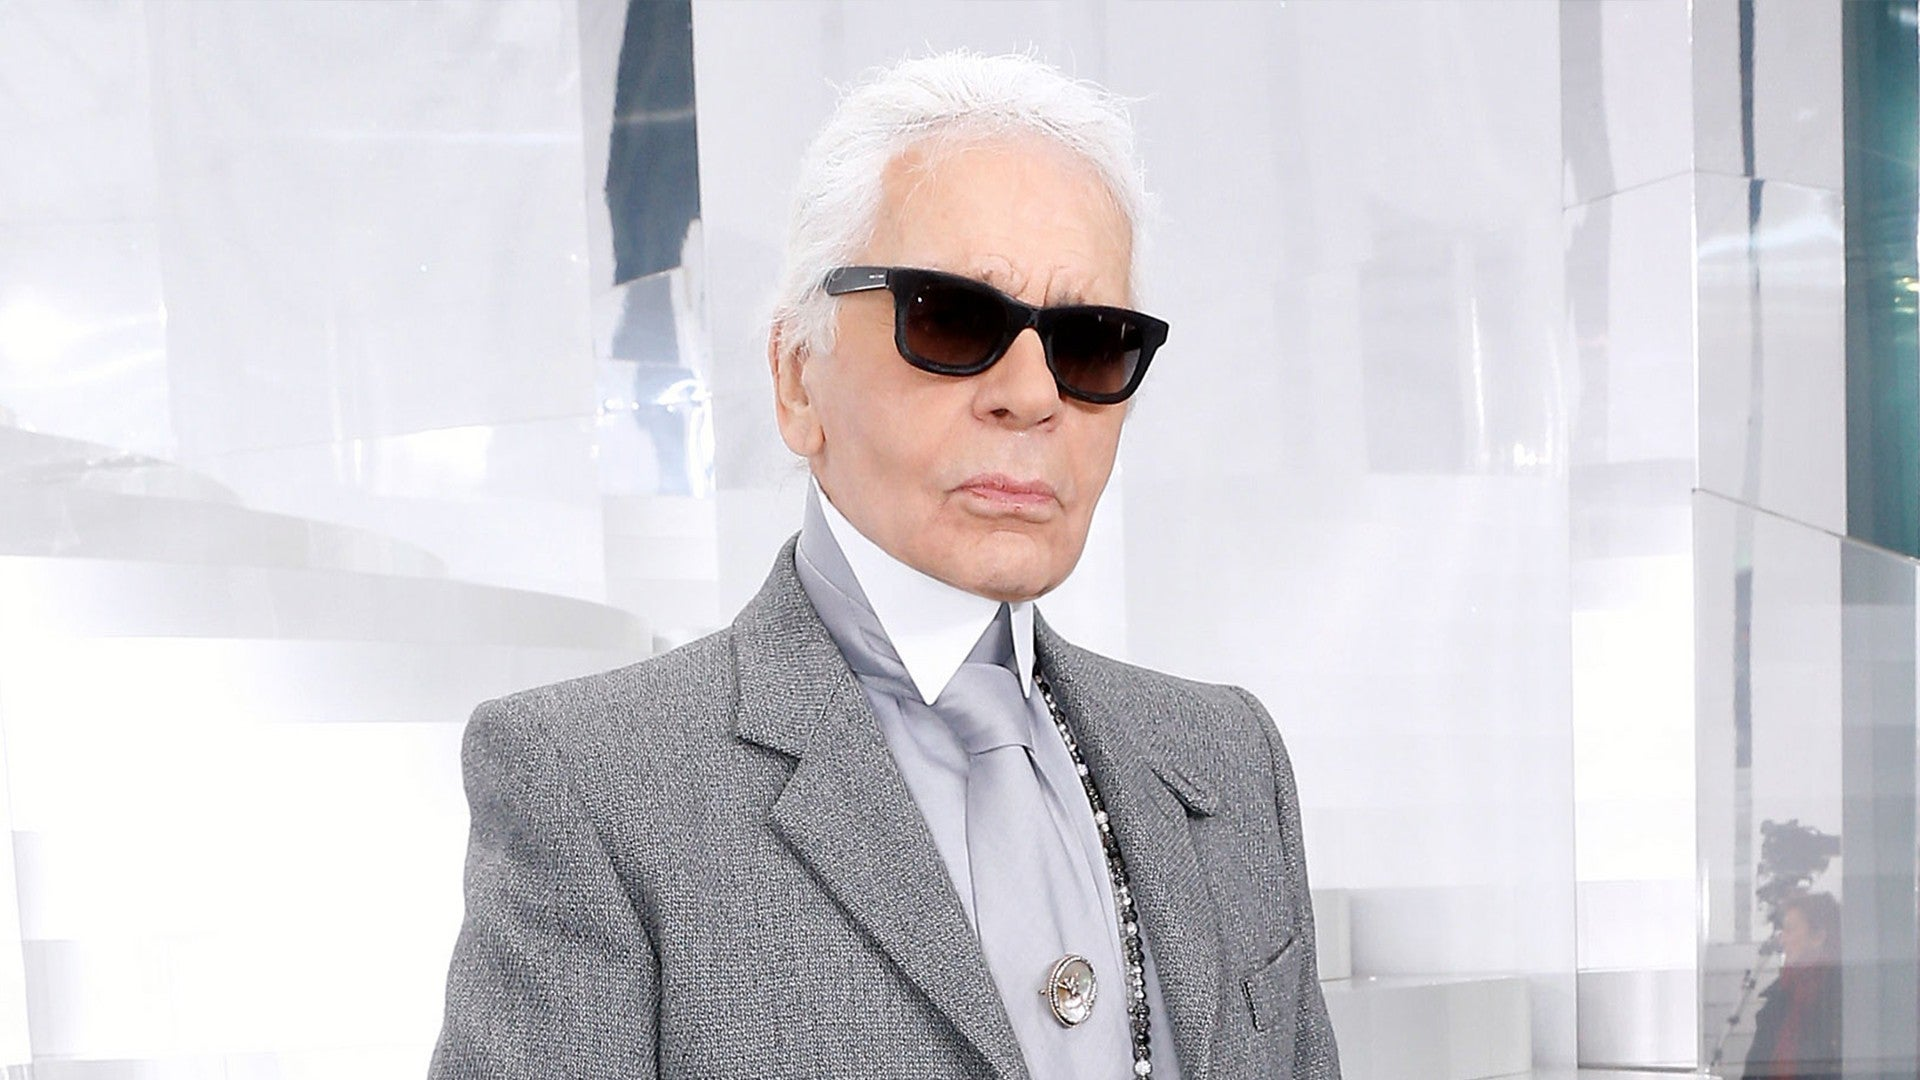 Karl Lagerfeld A Look Back At The Iconic Fashion Moments The Legendary Designer Gave Us Entertainment Tonight,Long Island Website Design